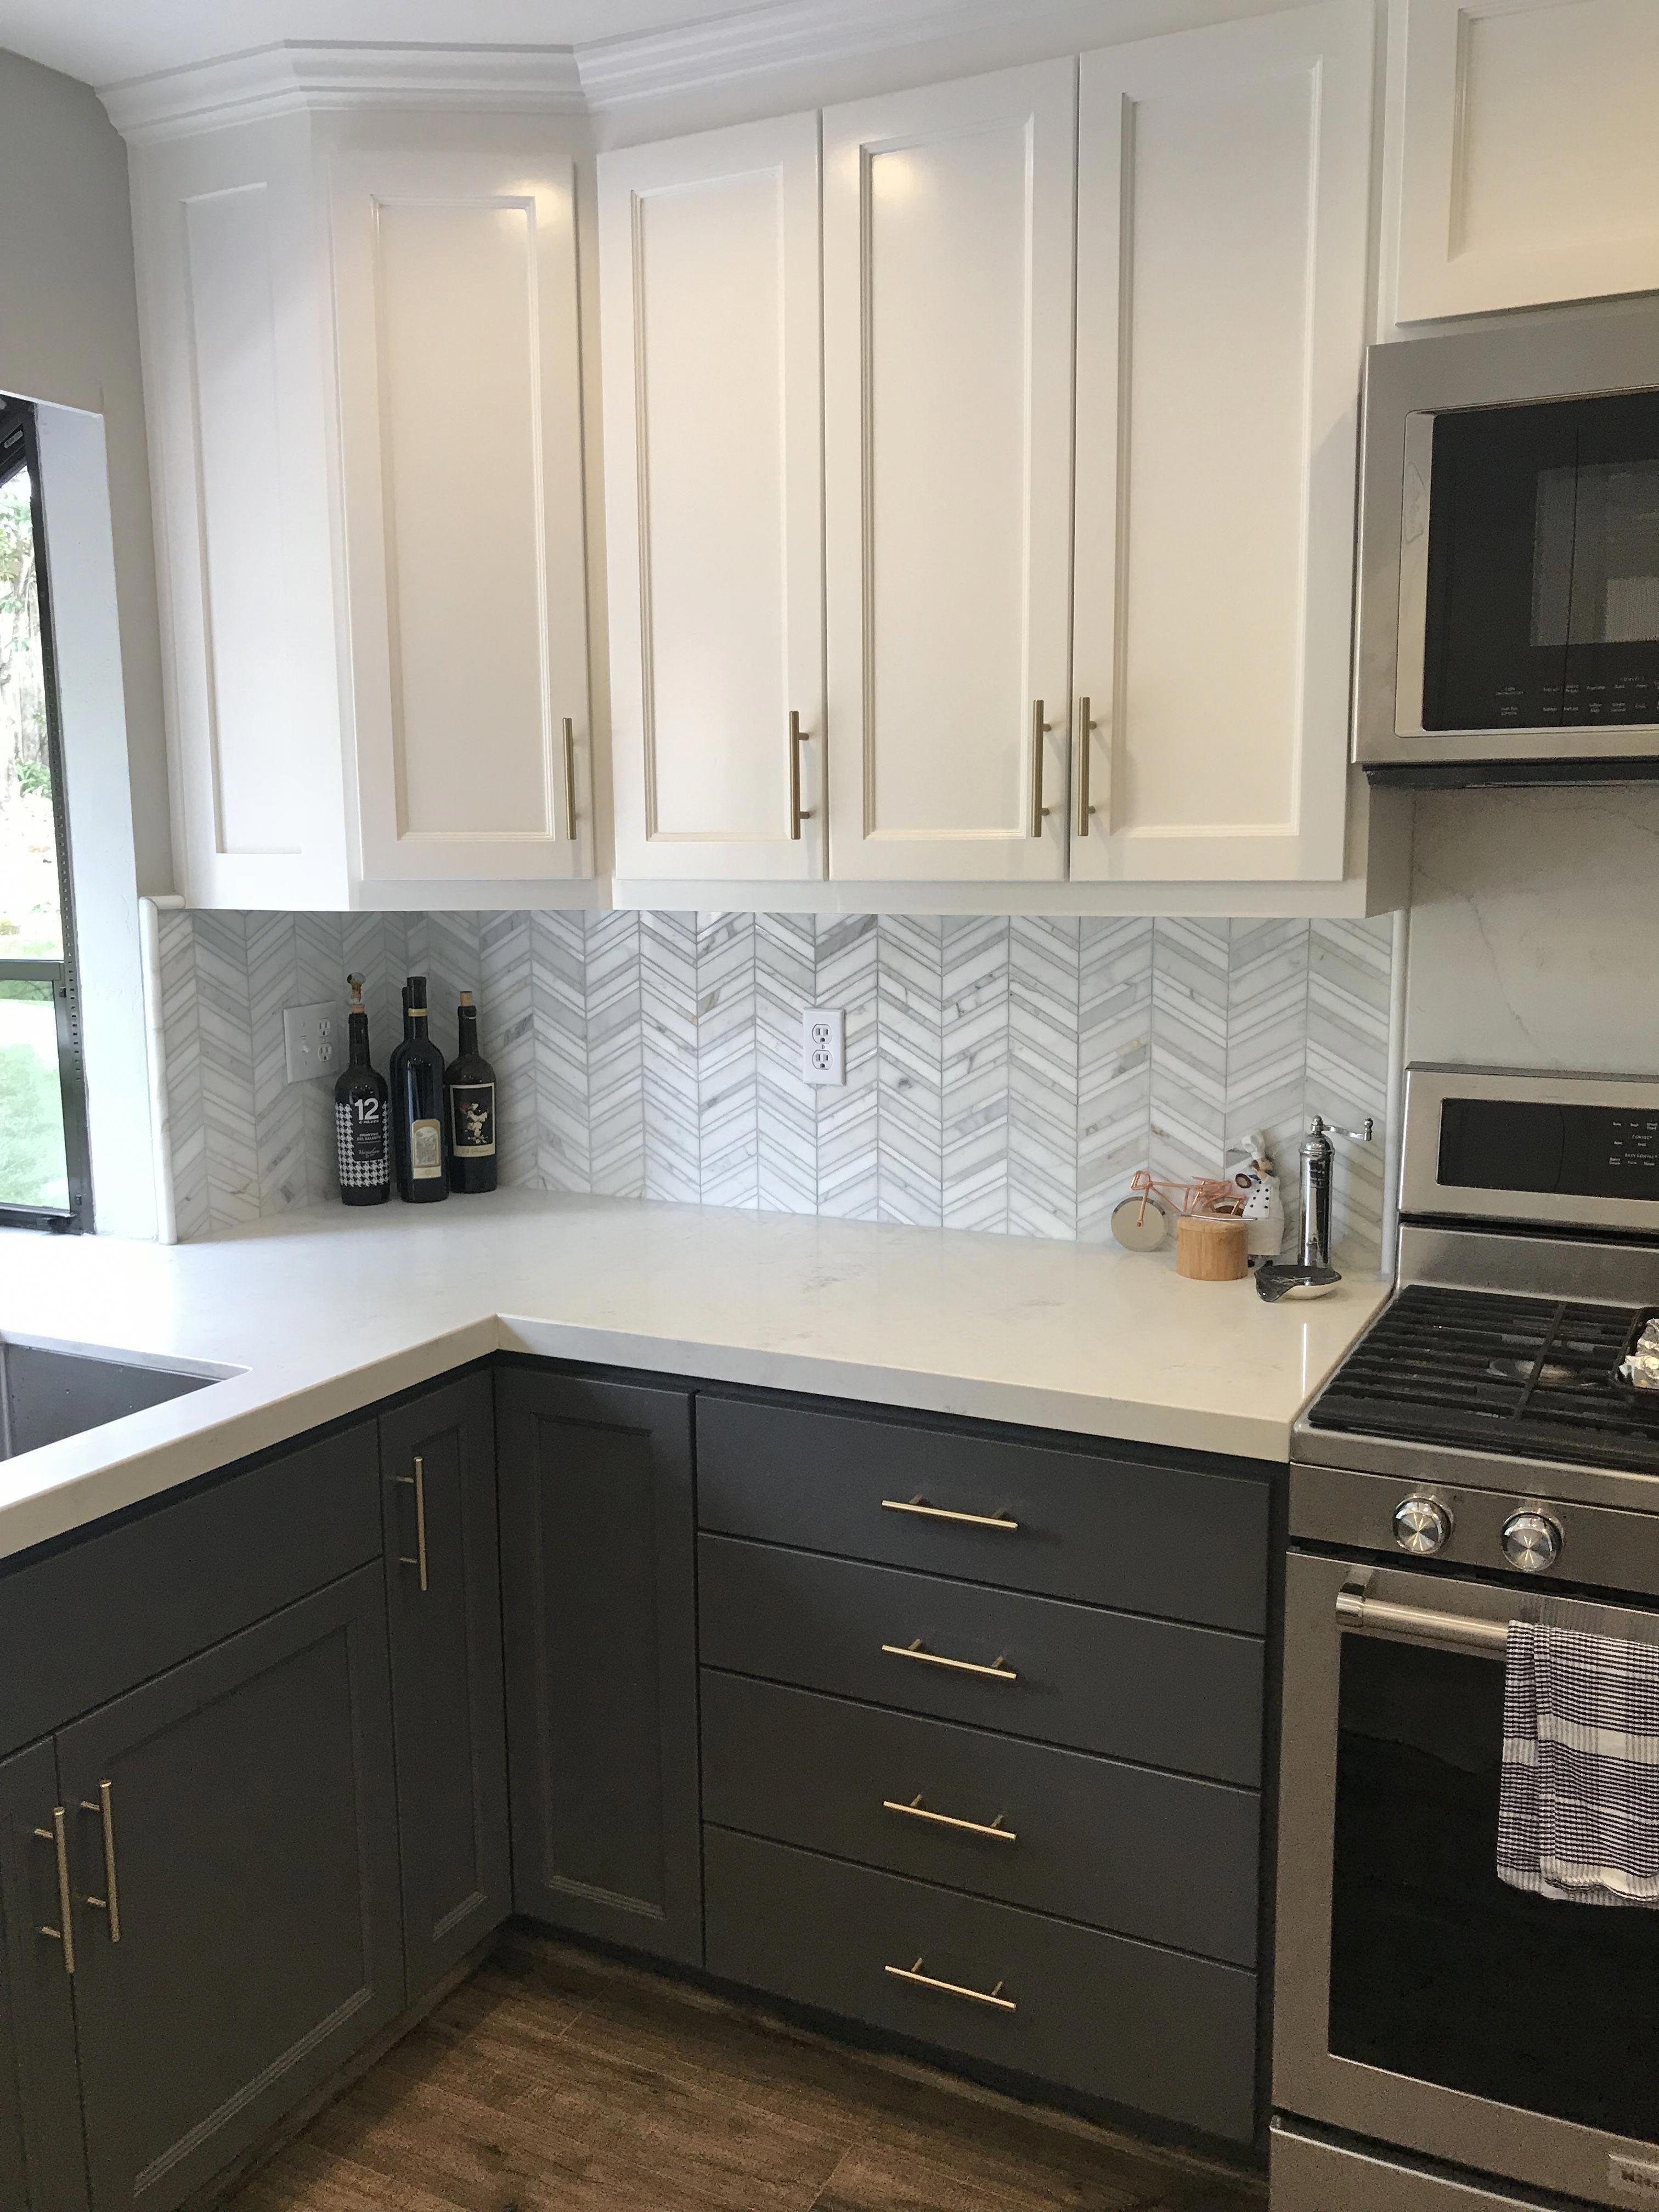 Spectacular Kitchen Cabinet Shades There Are Various Shades Of White To Pick From Kitchen Remodel Small Painted Kitchen Cabinets Colors New Kitchen Cabinets